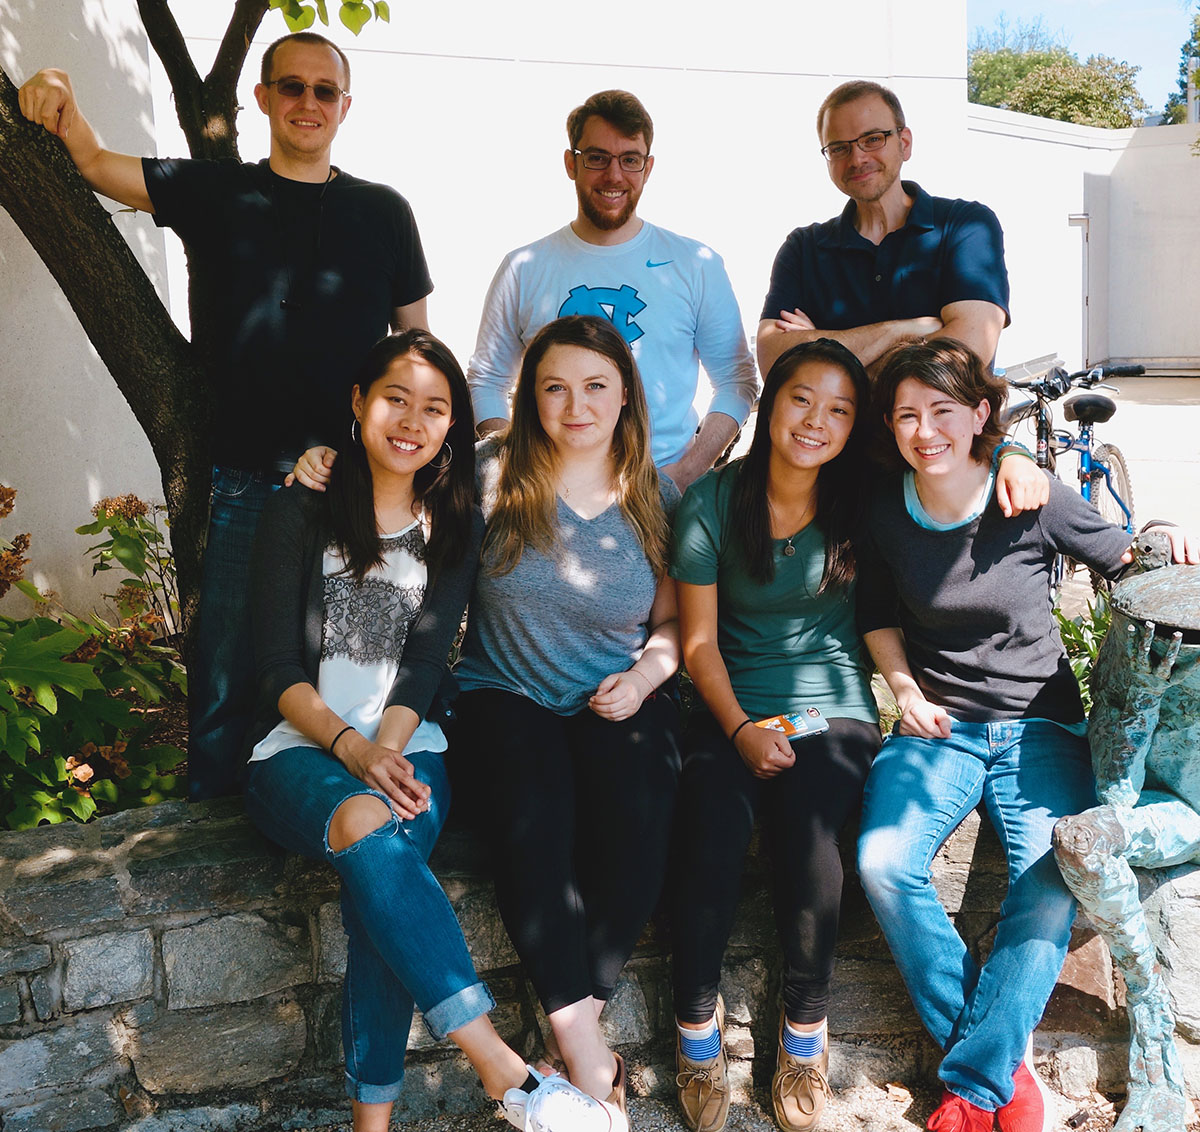 The Kelly lab group